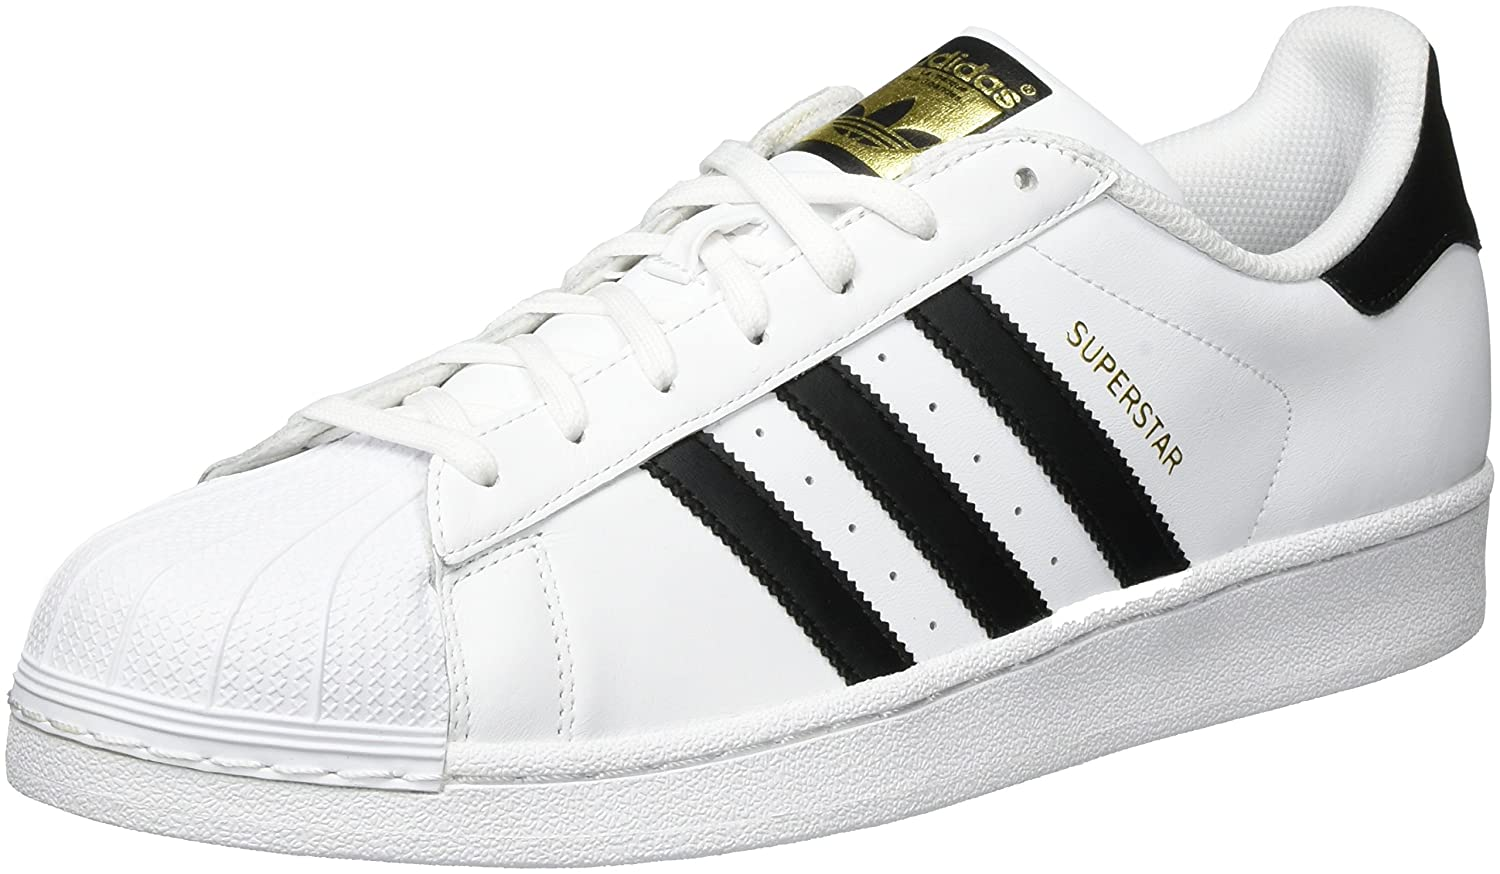 Superstar, Baskets Mode Mixte Adulte, Blanc (Footwear White/Footwear White/Footwear White), 40 EUadidas